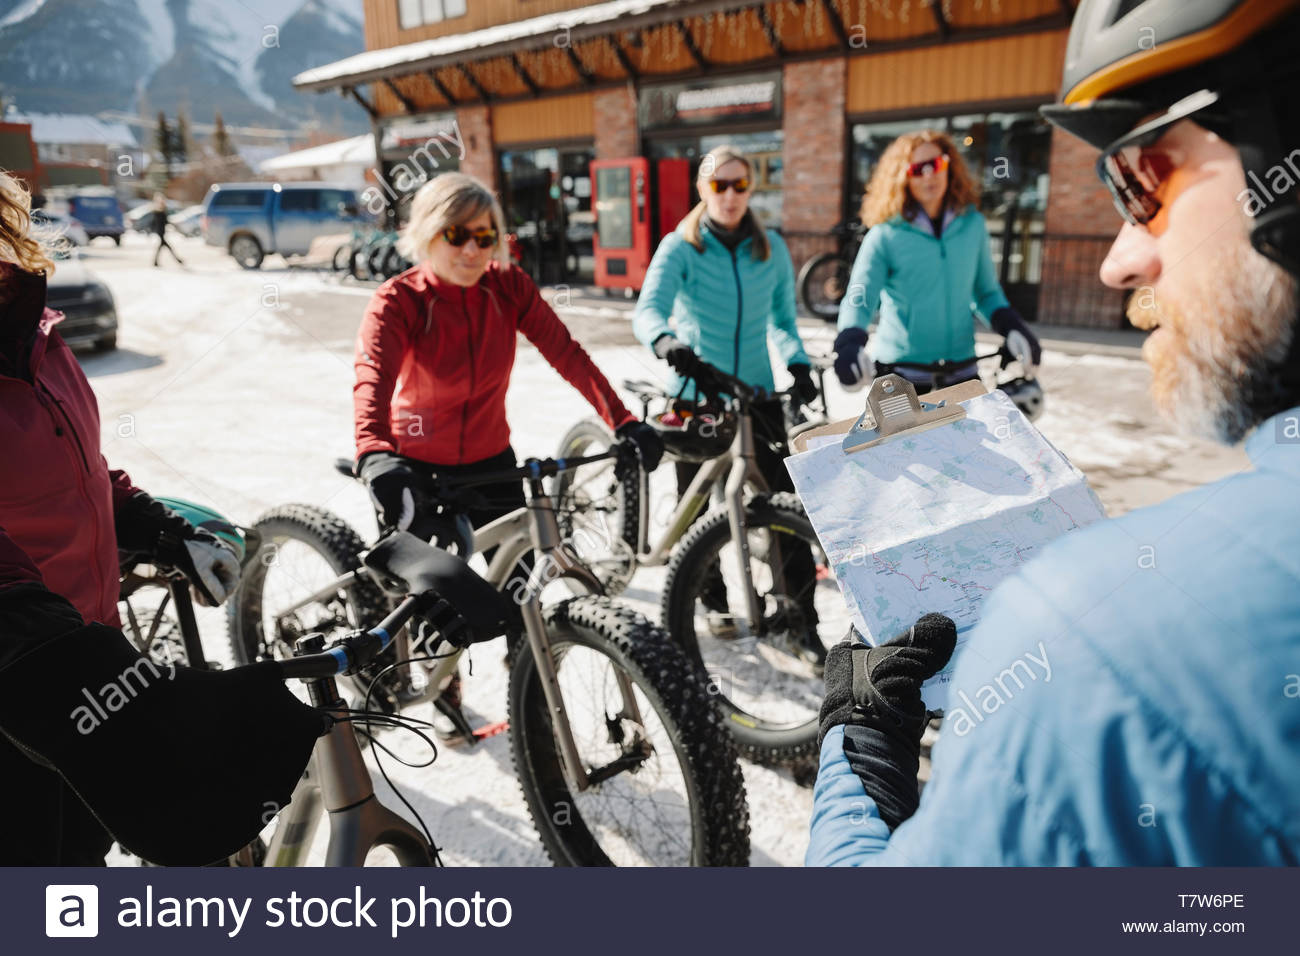 Instructor guiding friends fat biking in snow - Stock Image